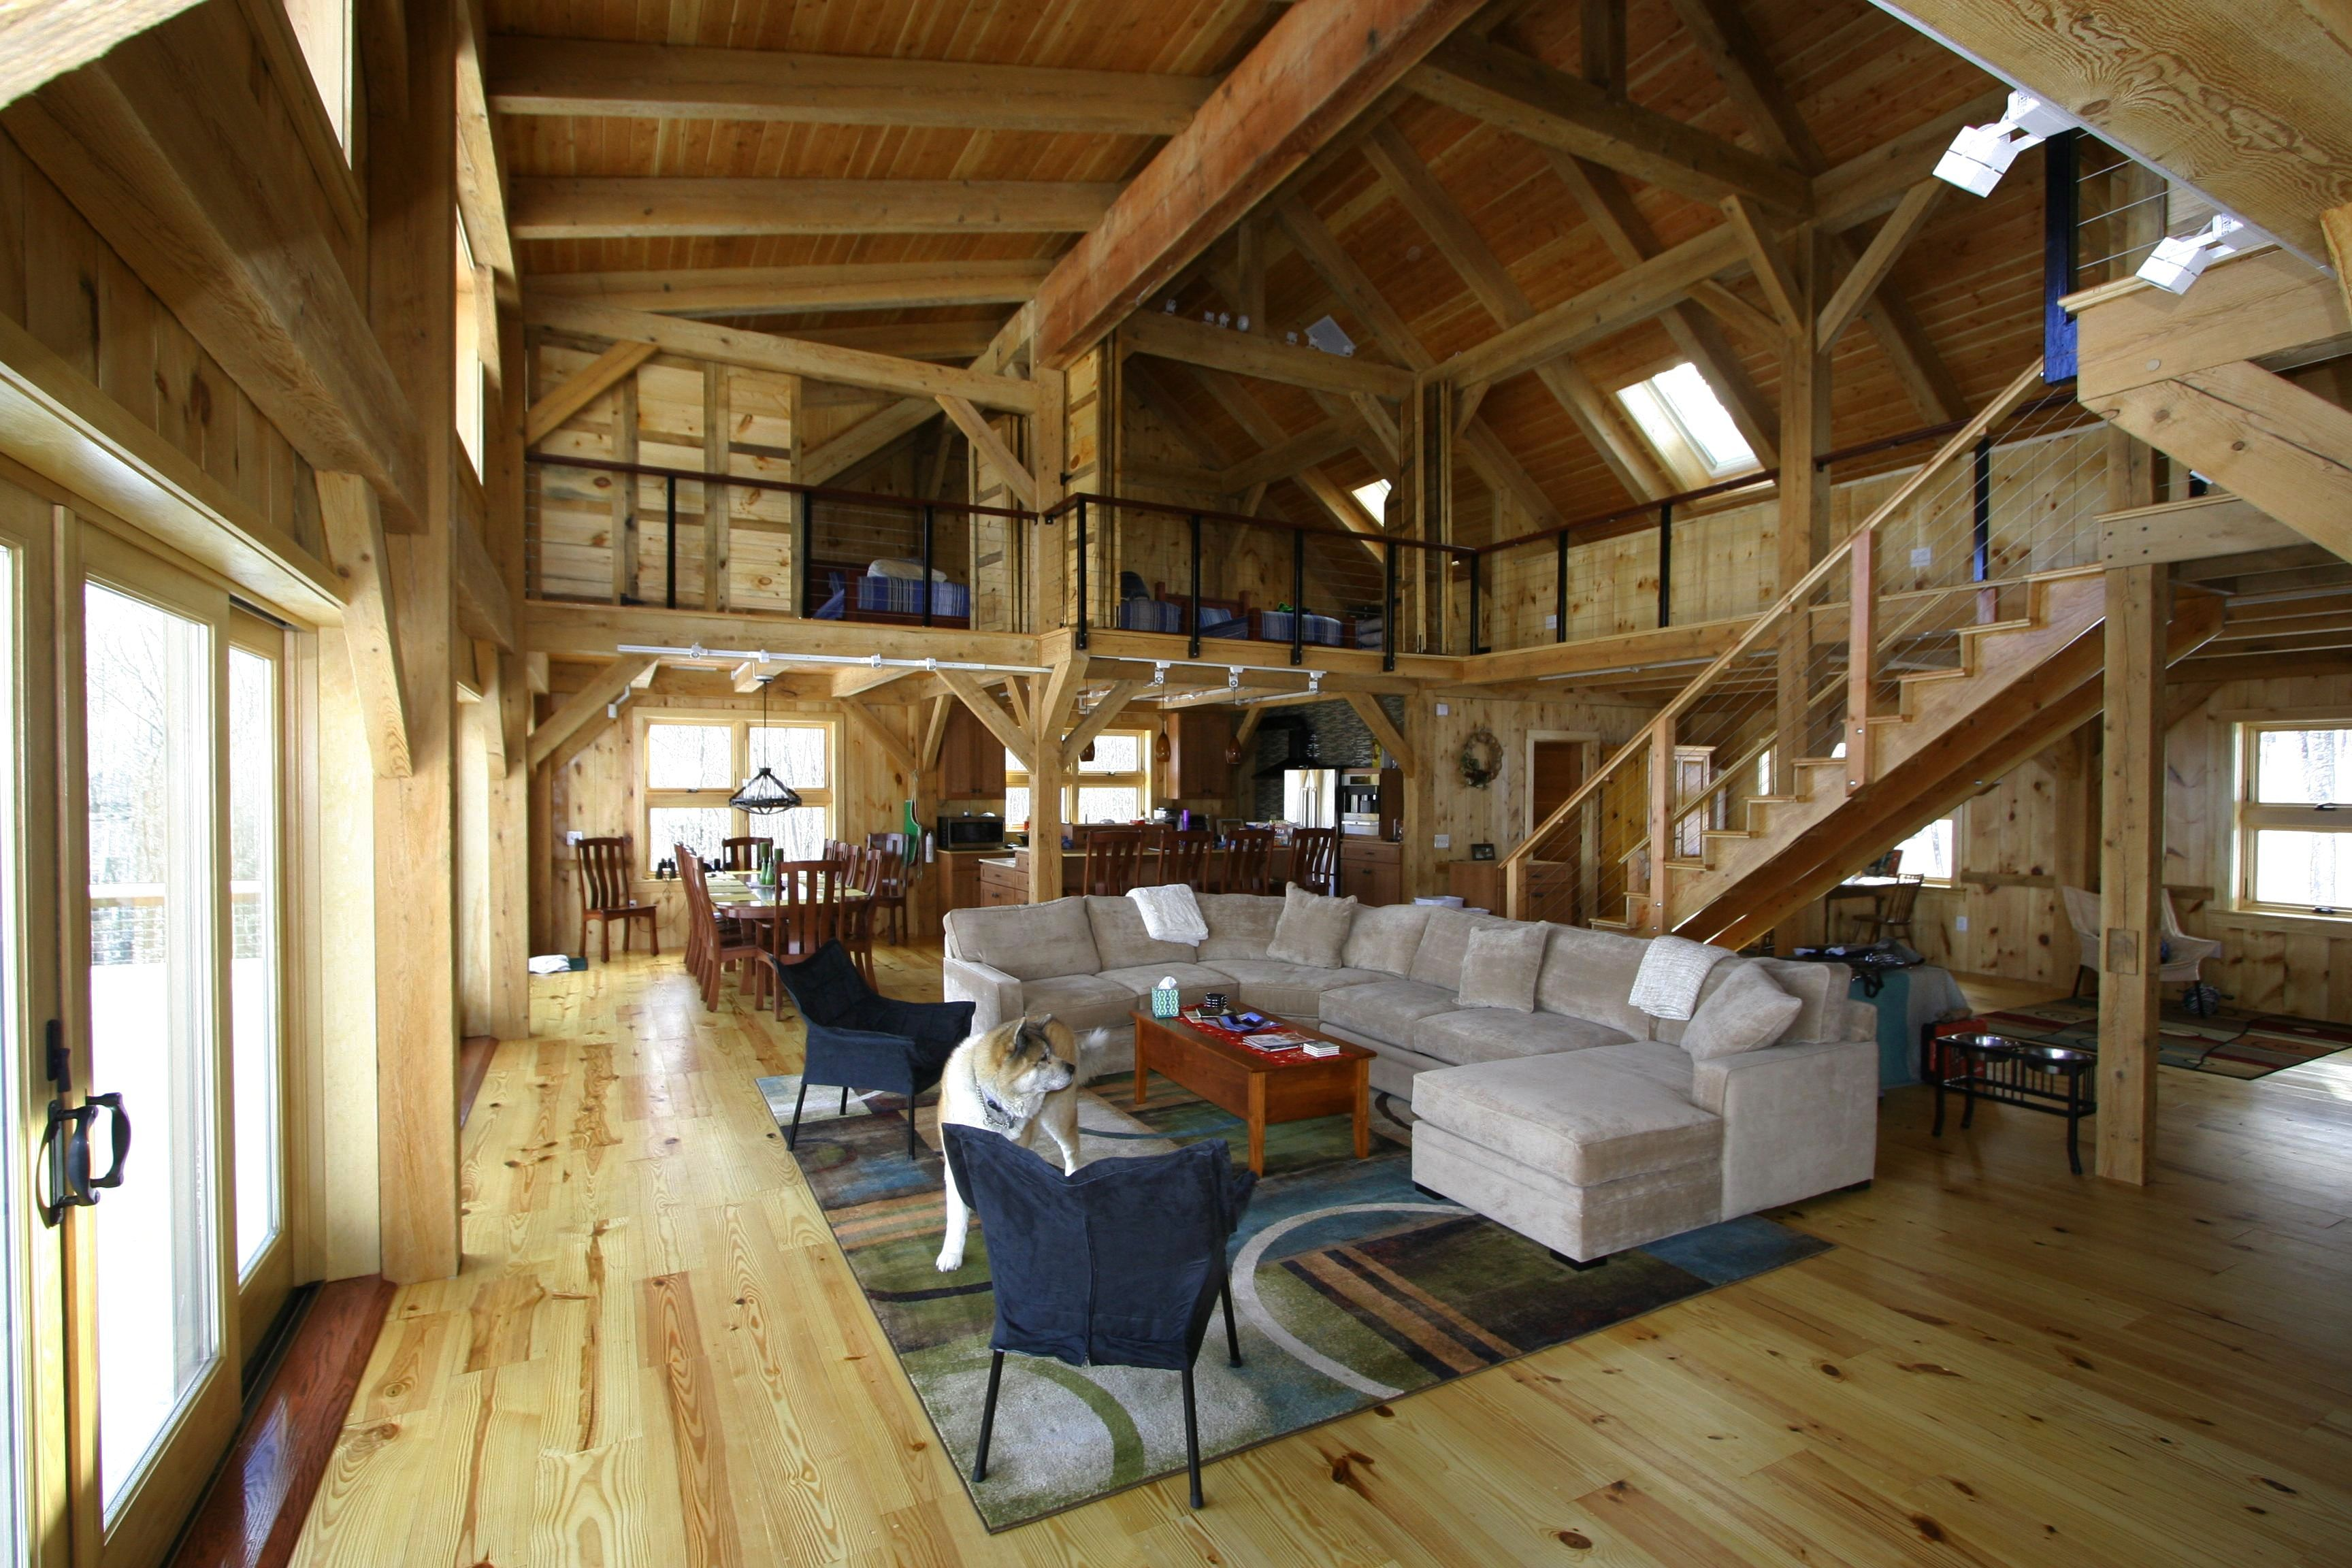 Charmant Spectacular Pole Barn Houses For Attractive Home Design: Pole Barn Houses  With Microfiber Sectional Couch With Chaise And Area Rug Also Wood Flooring  With ...